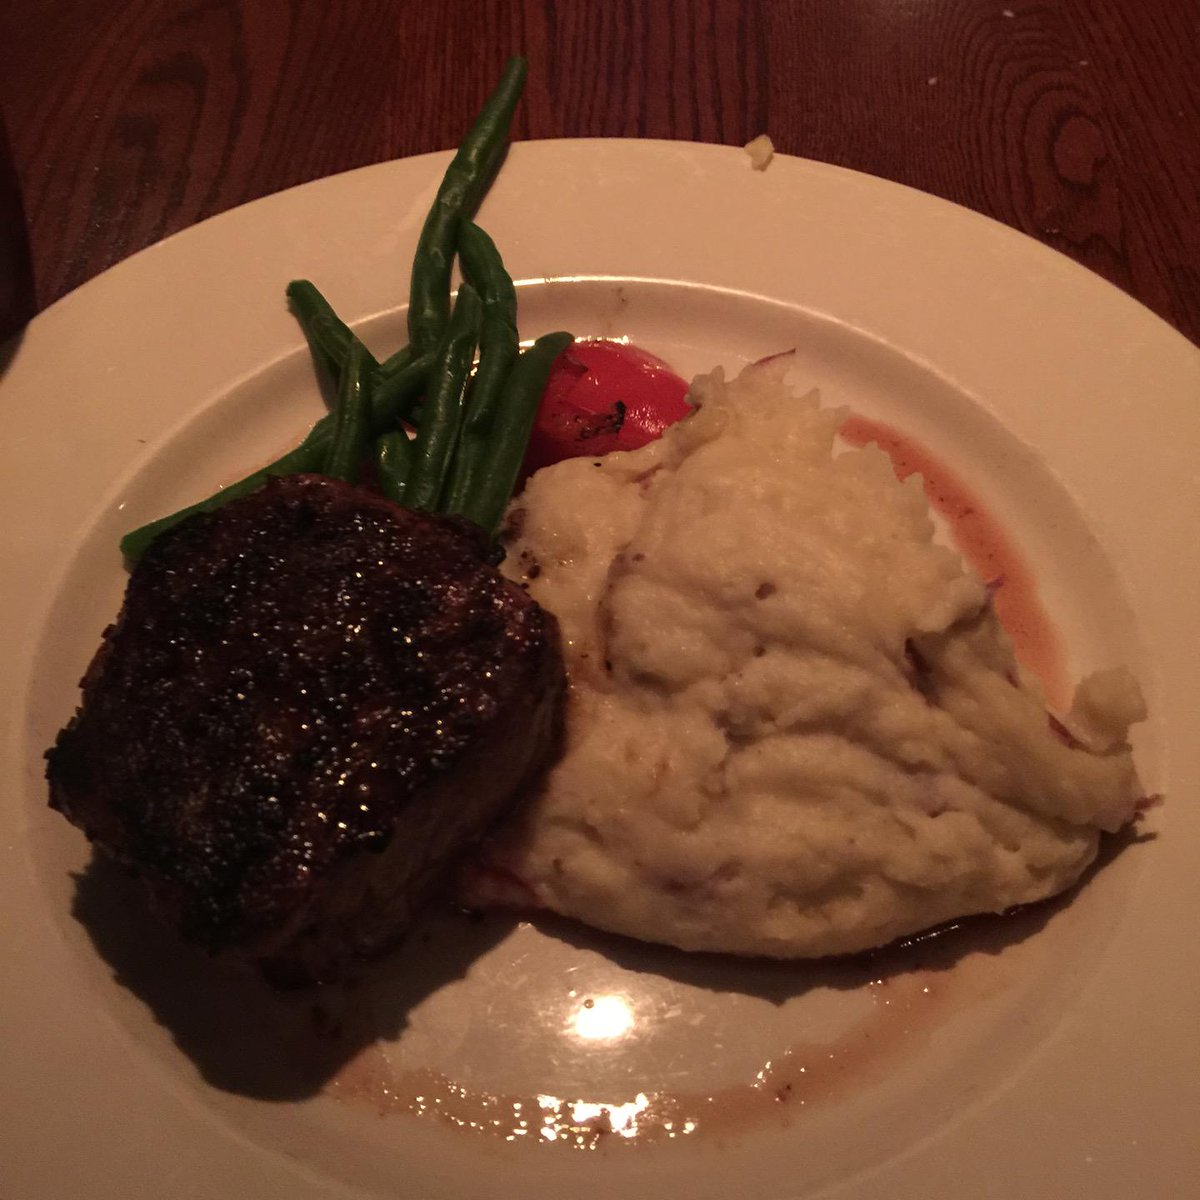 Twitter post: RT @luhazytheaa: Worth the wait (at @TheKeg Steakhouse…Read more. Opens full post in an overlay